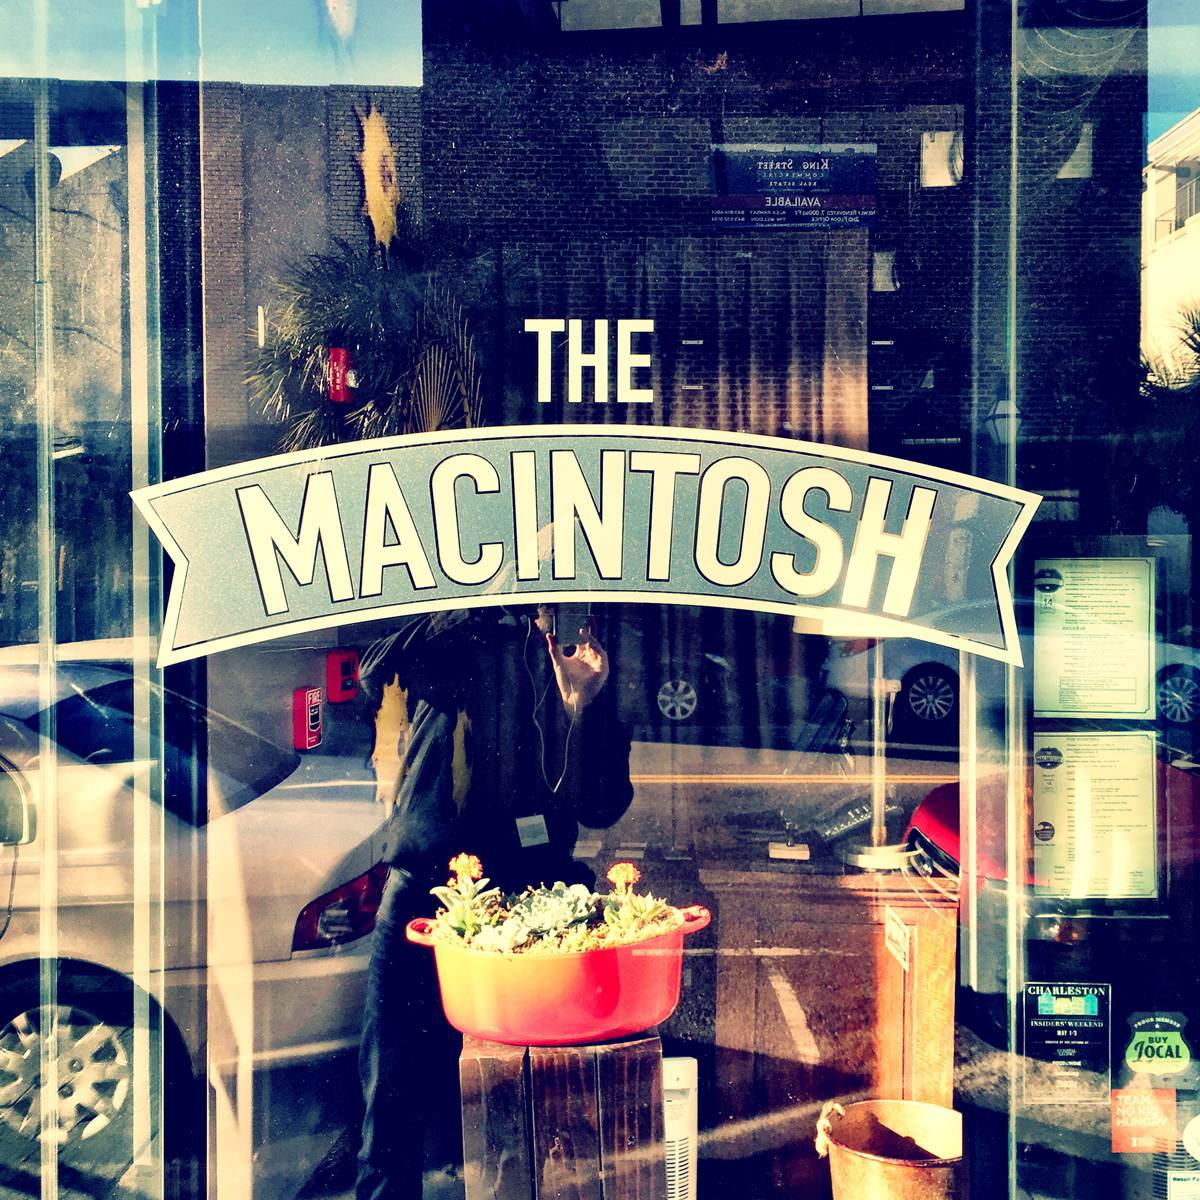 This sign is simple and classic.  We have had a couple outstanding meals at the Macintosh.  Can you see me?